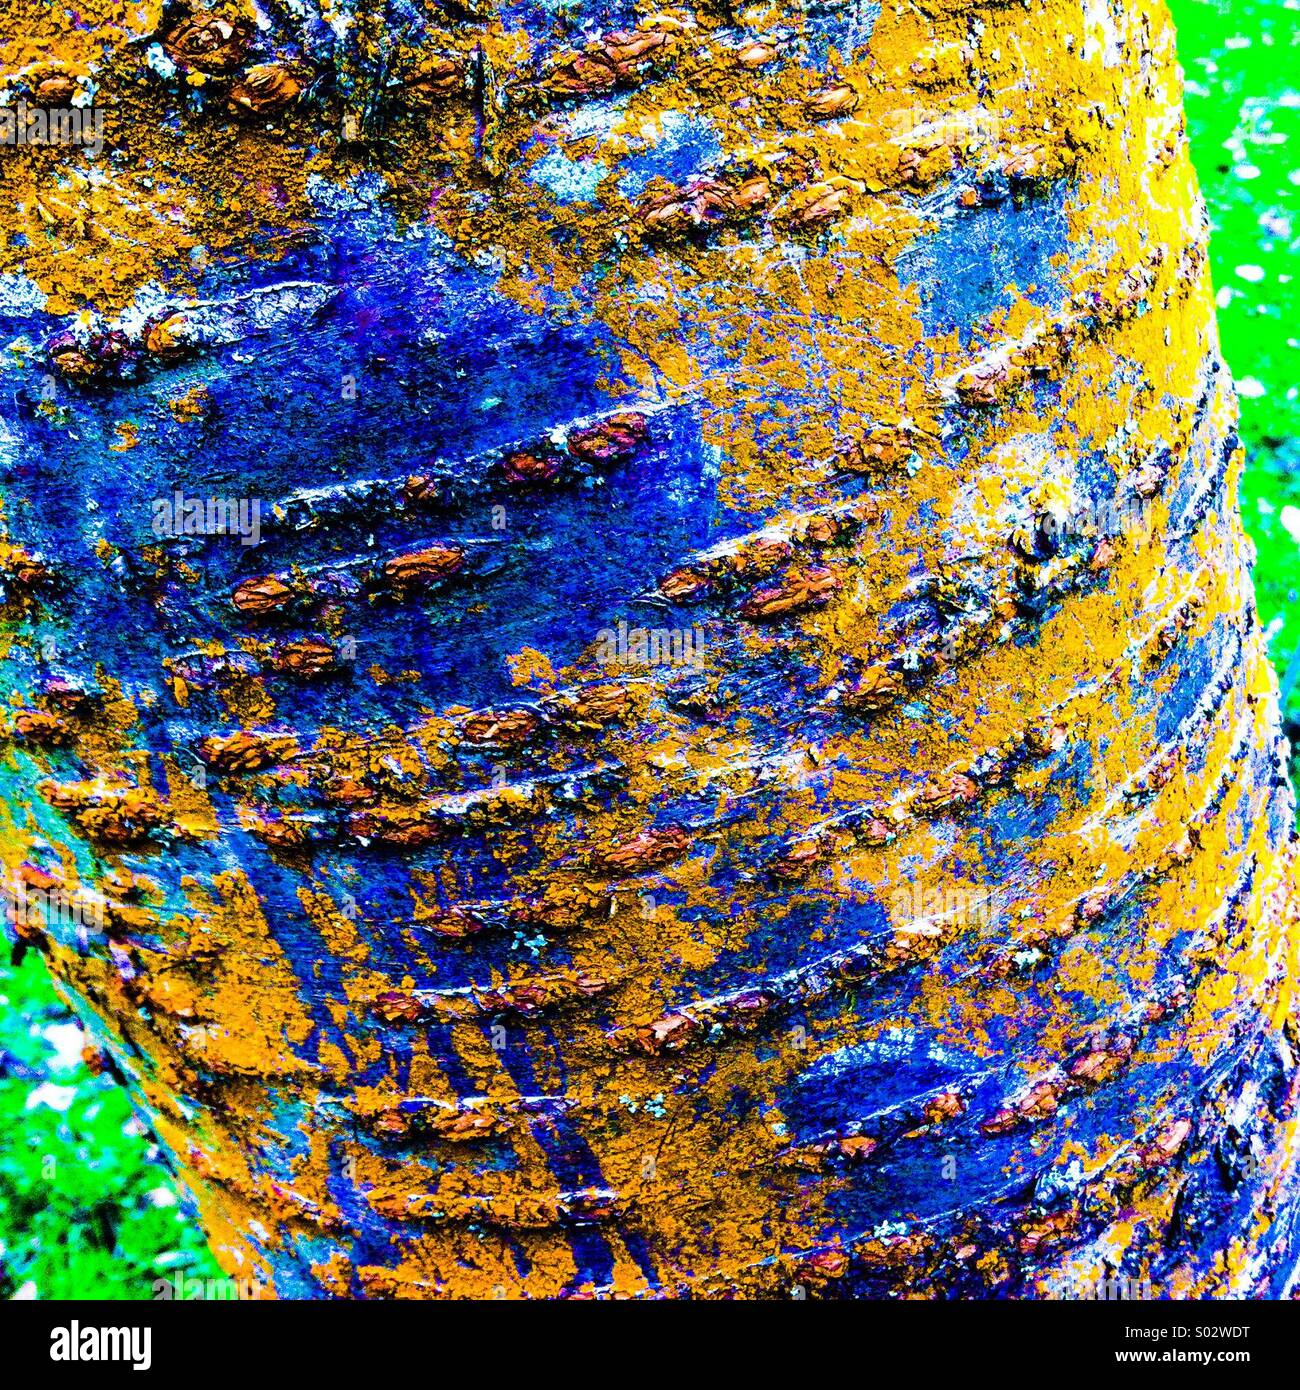 Strongly coloured bark on tree trunk - Stock Image